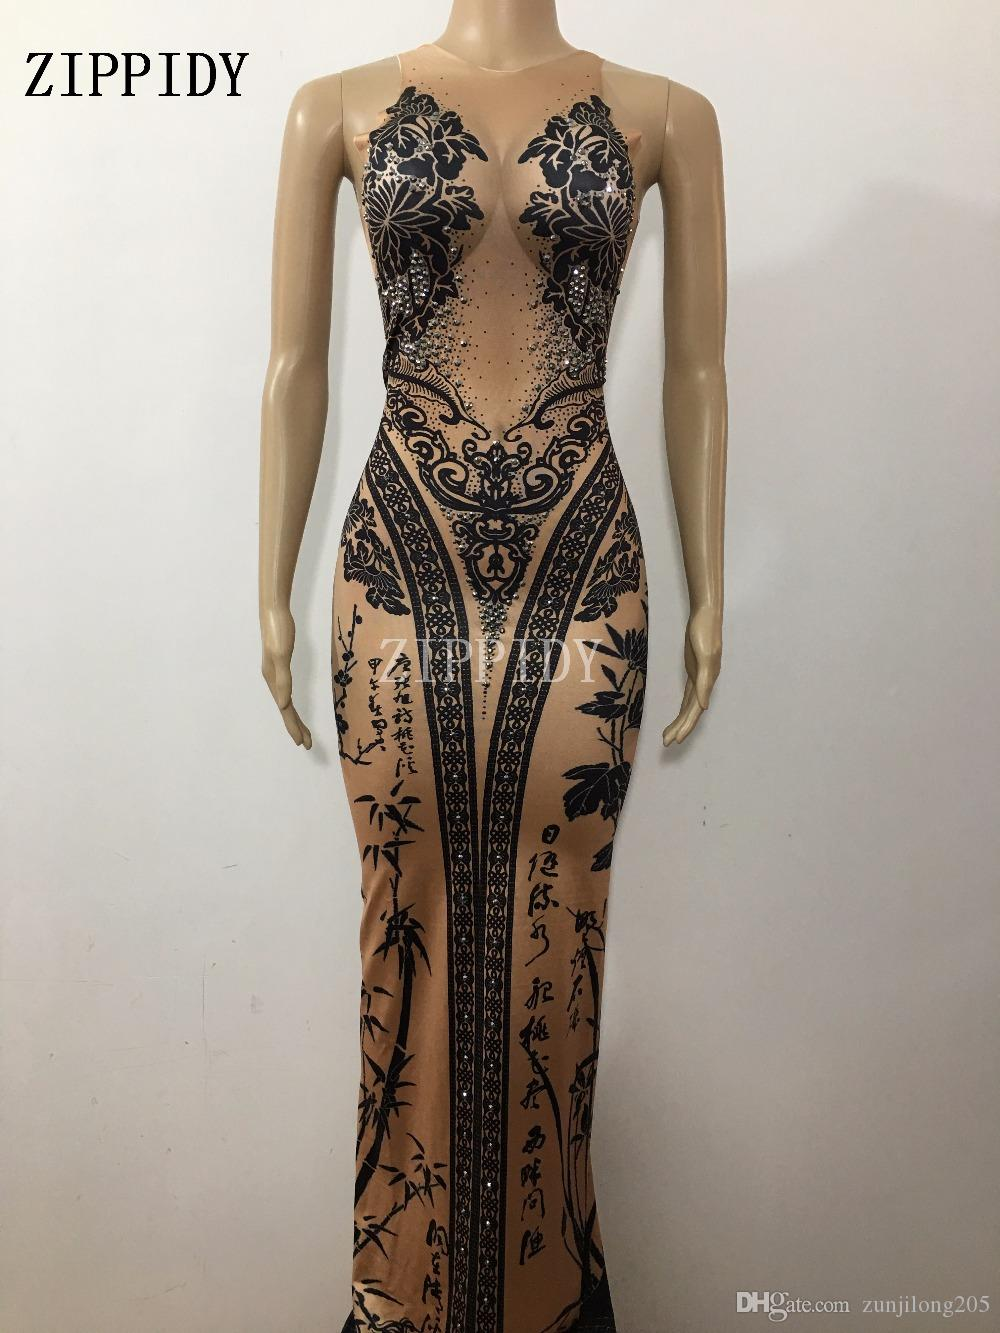 Chinese Bamboo Printed Long Dress Bright Crystals One-piece Costume Female Singer Nigjtclub Party Show Celebrate Outfit Clothes